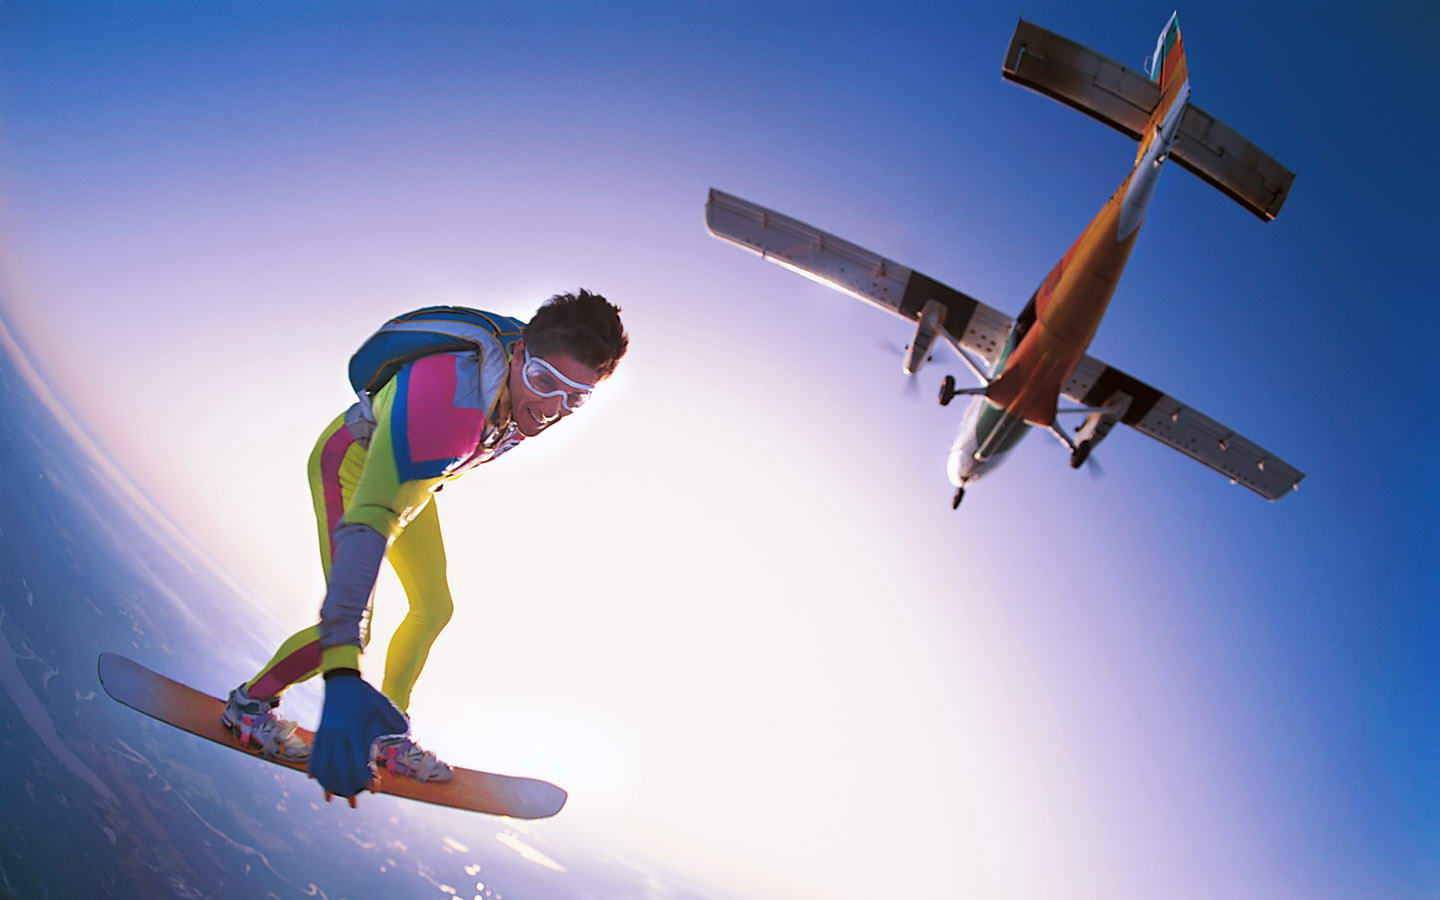 Chasing the Lineage of Extreme Sports